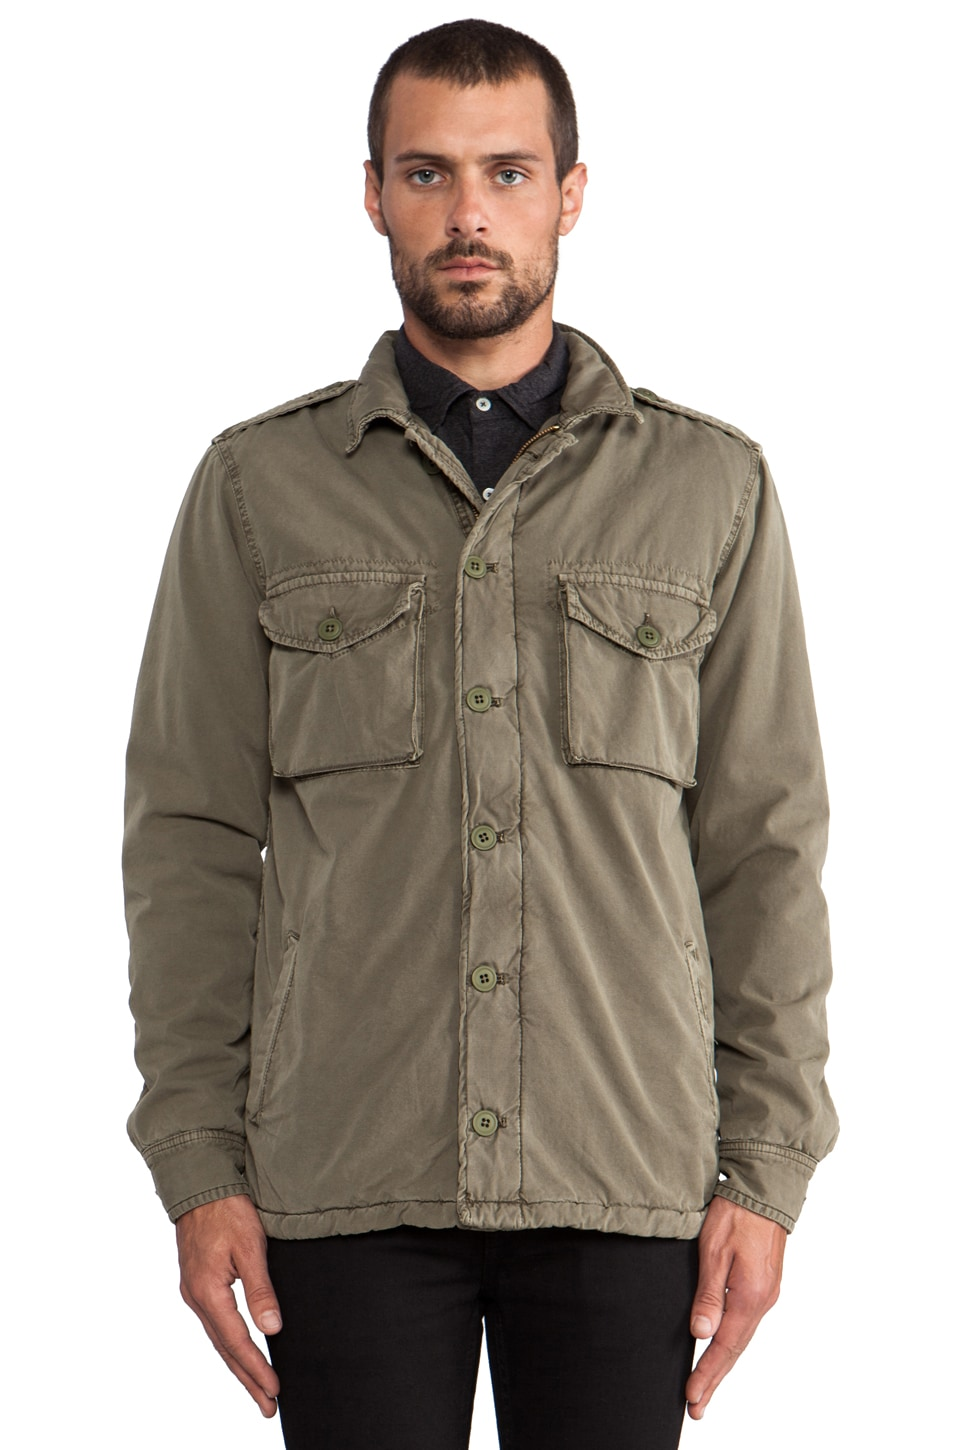 Hartford Army Jacket in Army Green